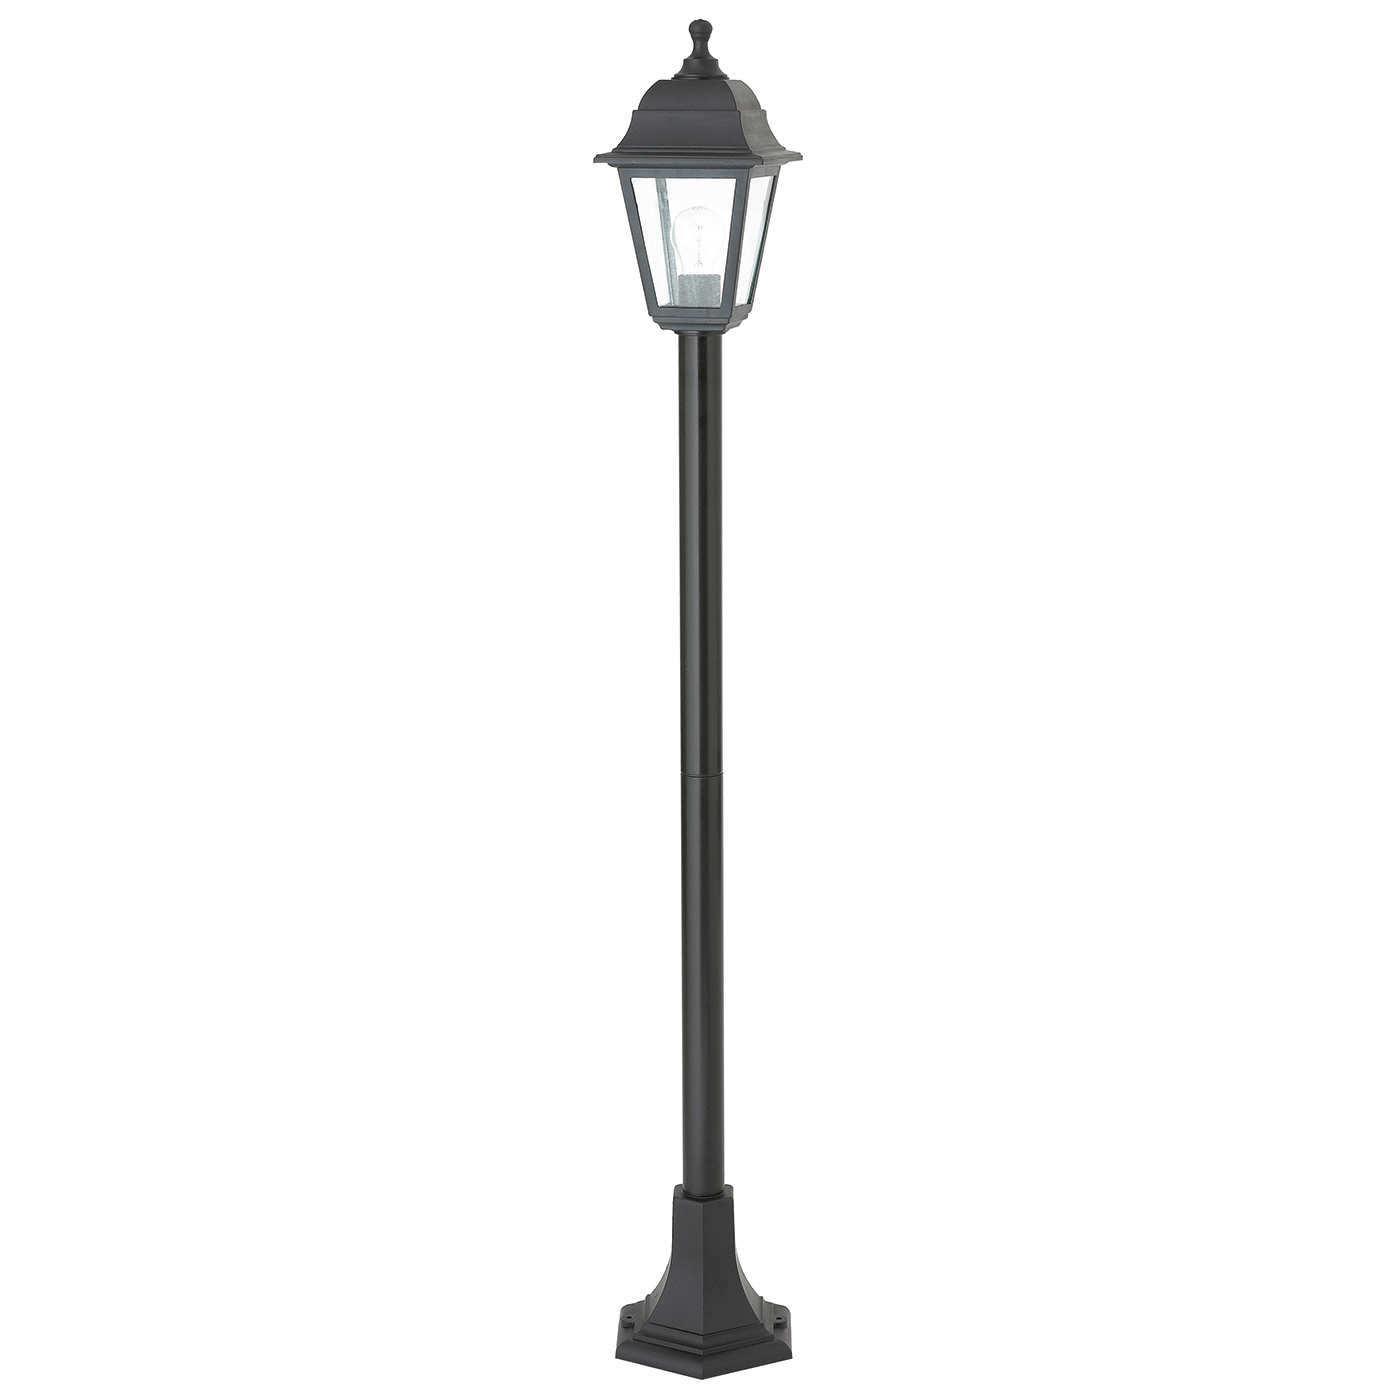 Endon EL-40044 Post Lantern GLS ES 60W